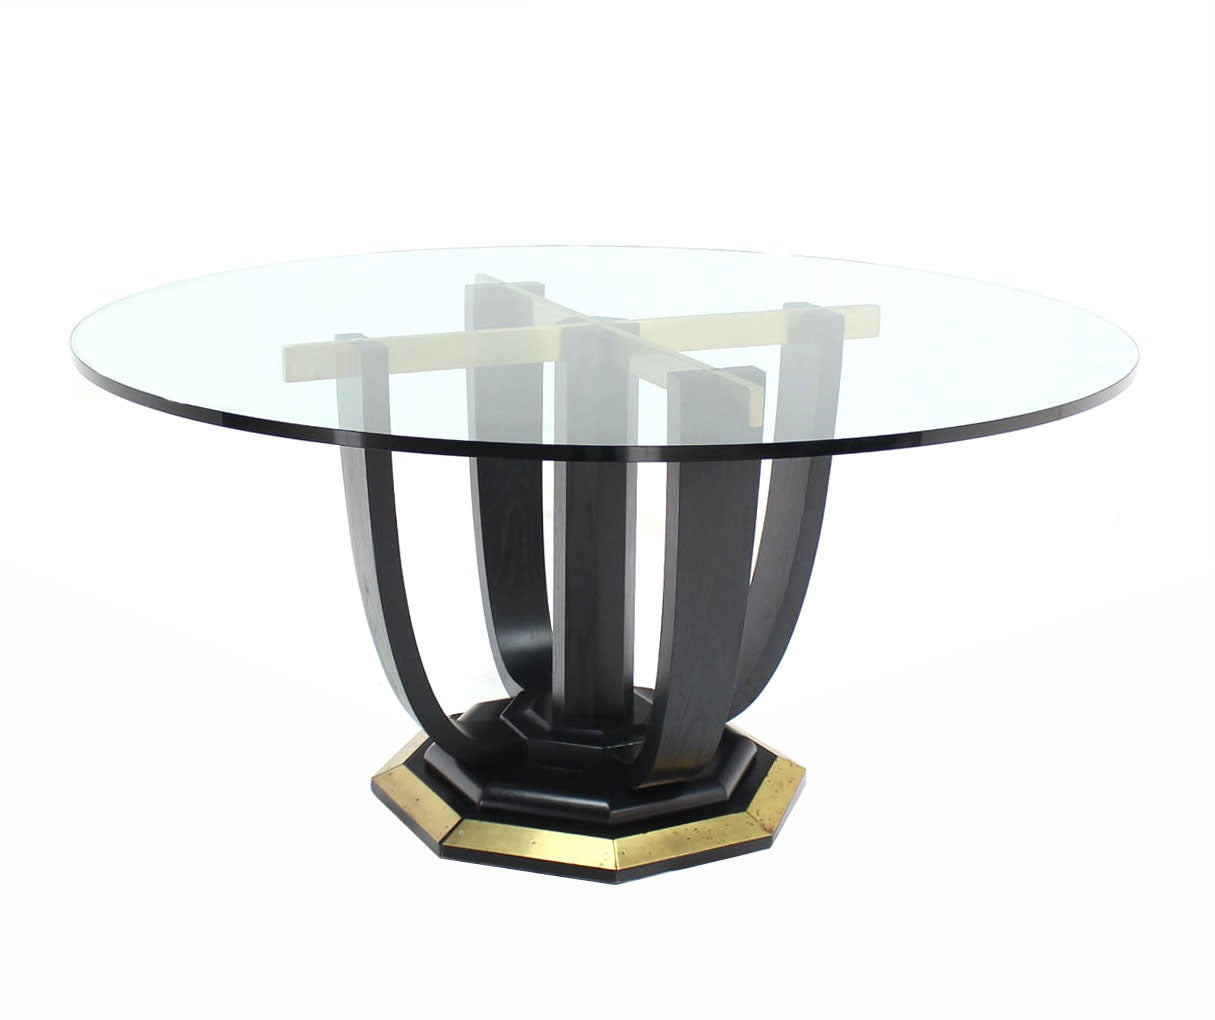 Center Table With Glass : Sorry, this item from Soho Treasures is not available.